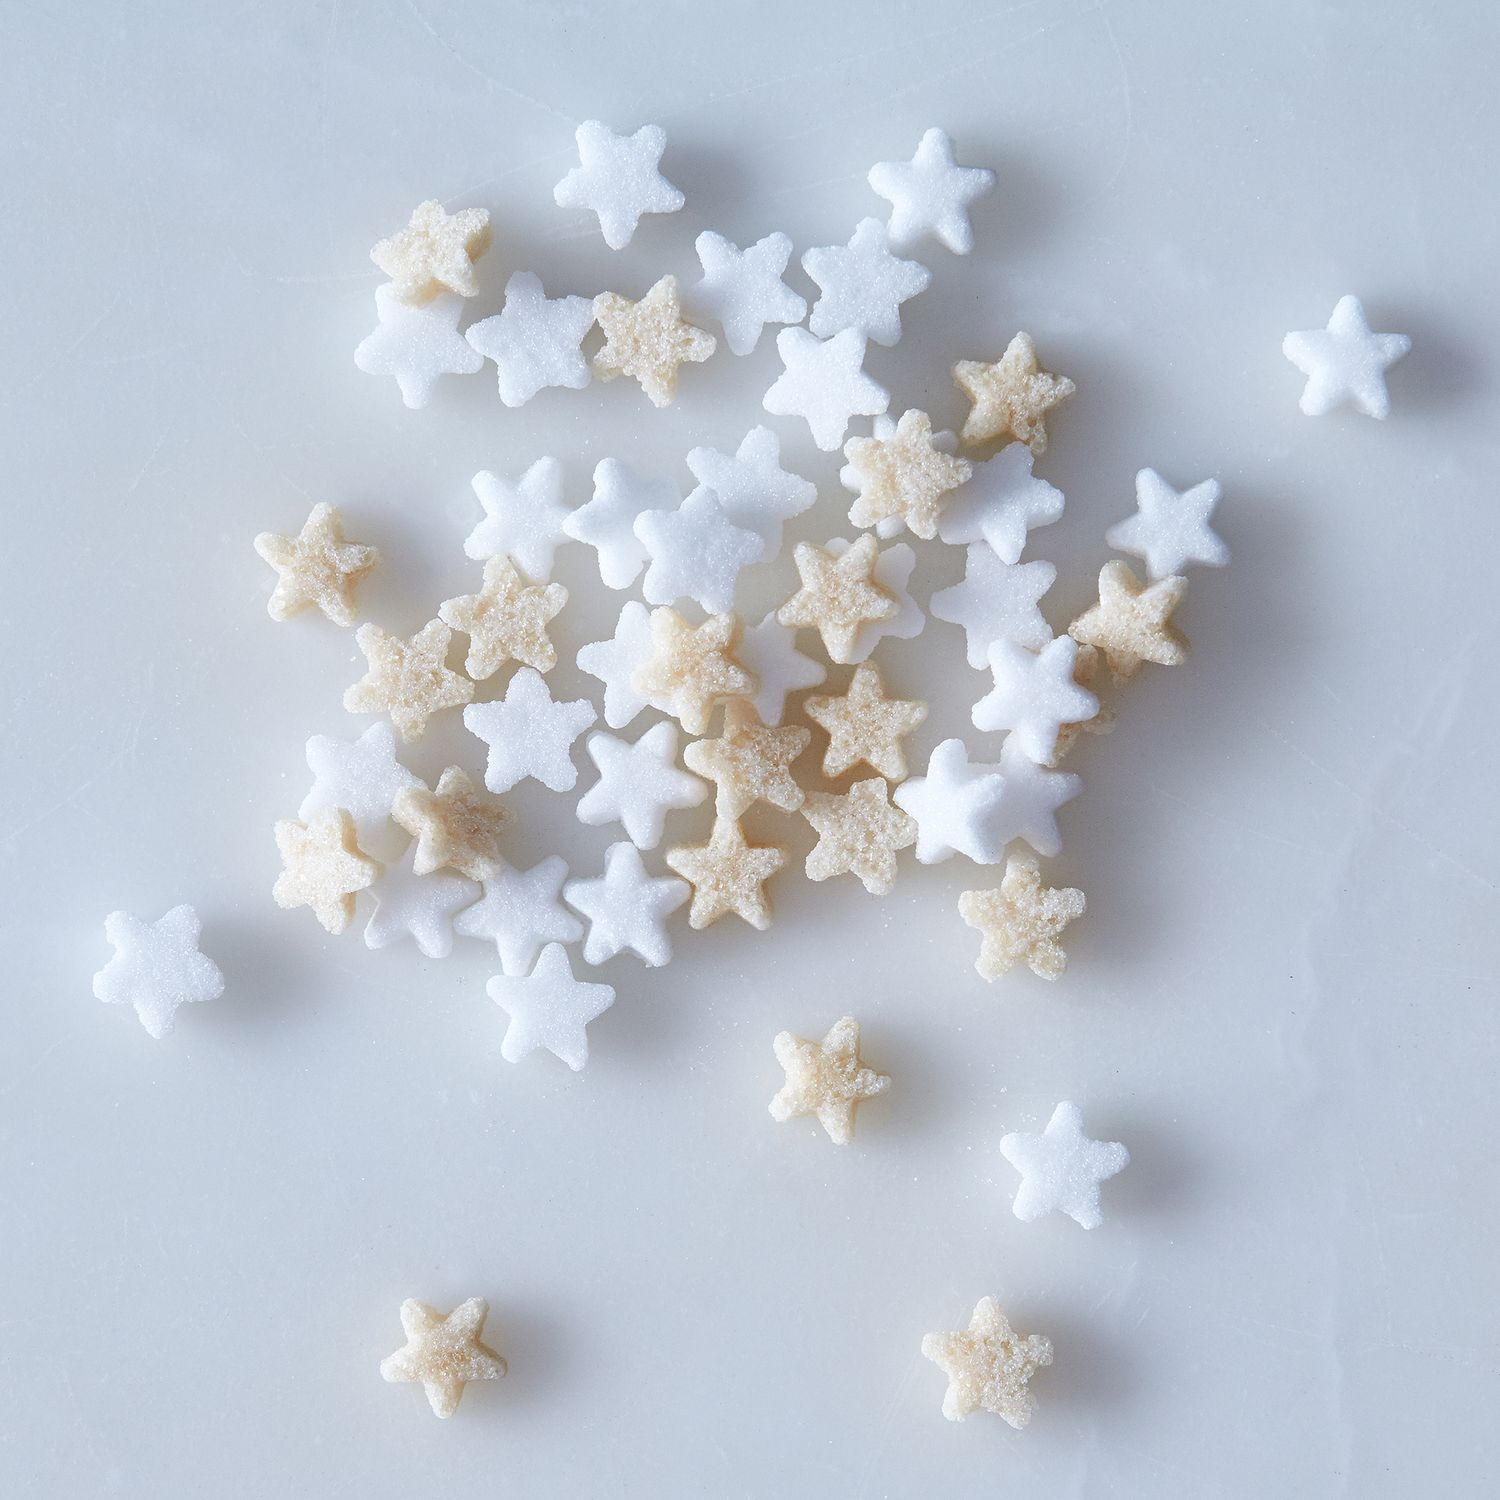 Star Shaped French Sugar Cubes On Food52